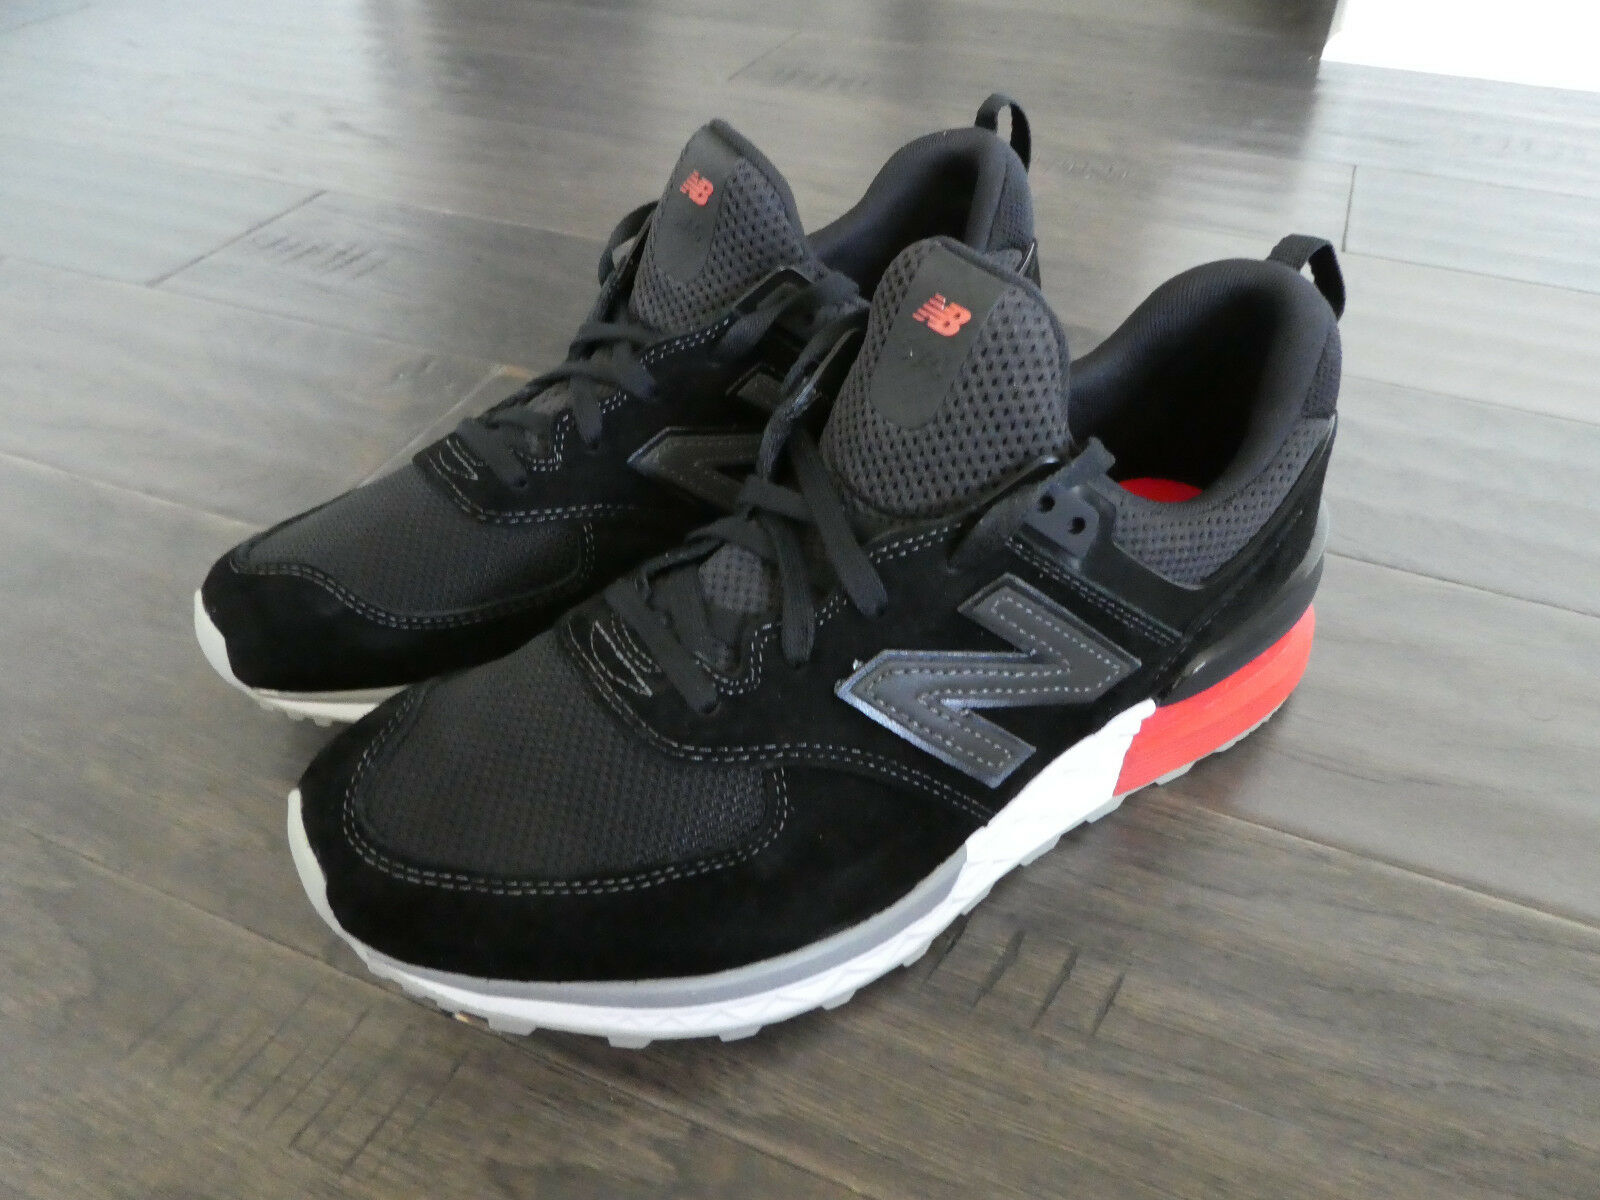 New Balance Men's shoes MS574AB Sneakers Size 8 black red 574